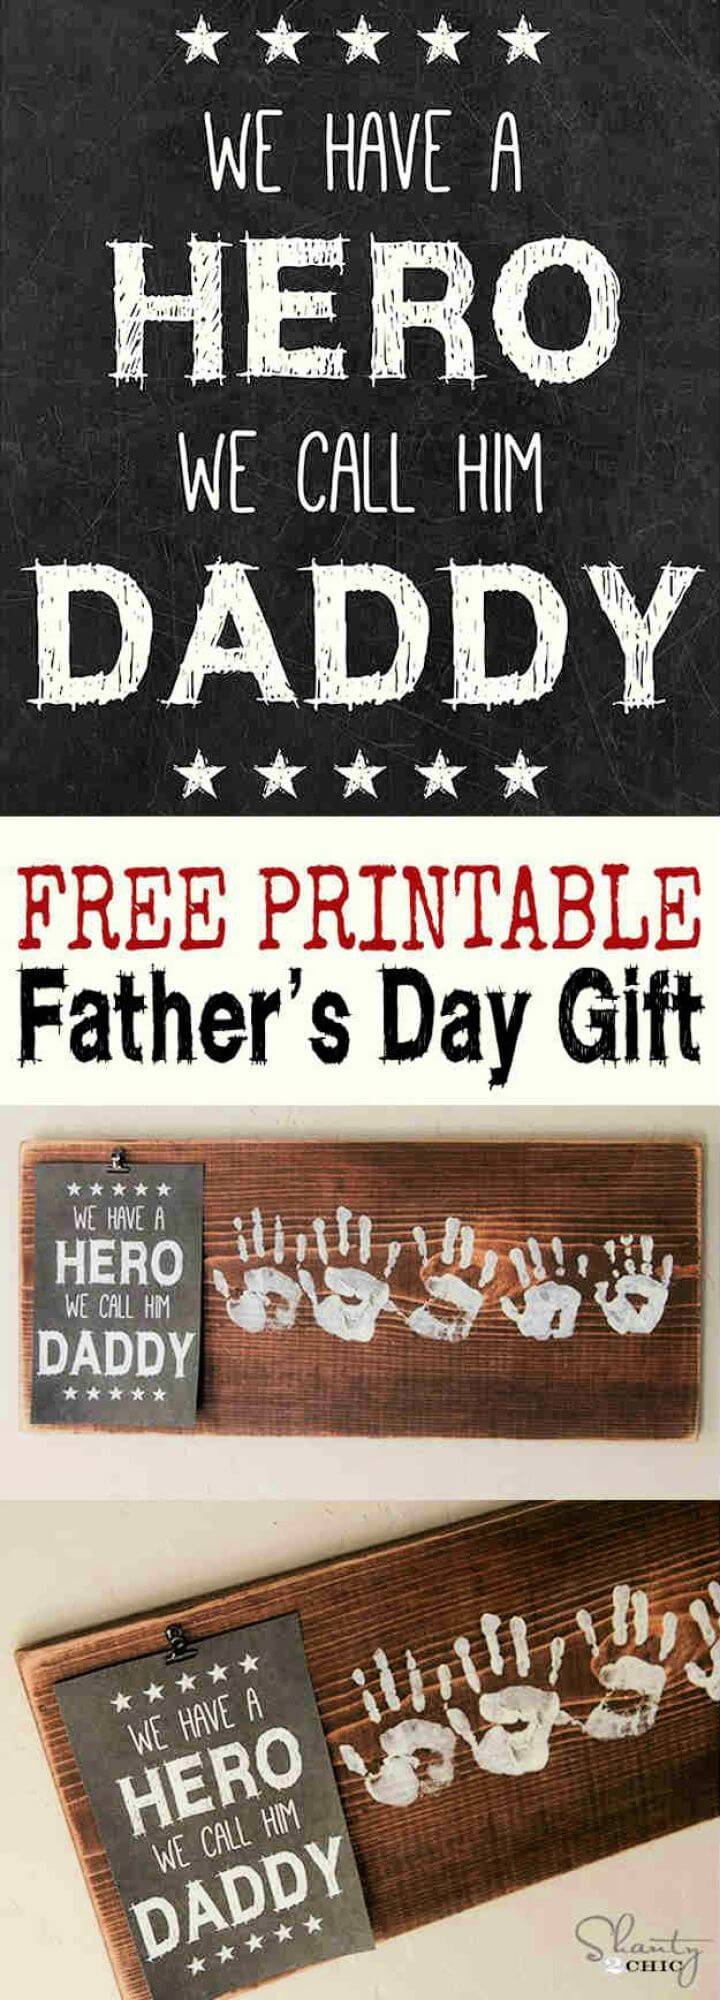 hero fathers day gift, gift for father, how to make, ideas for father